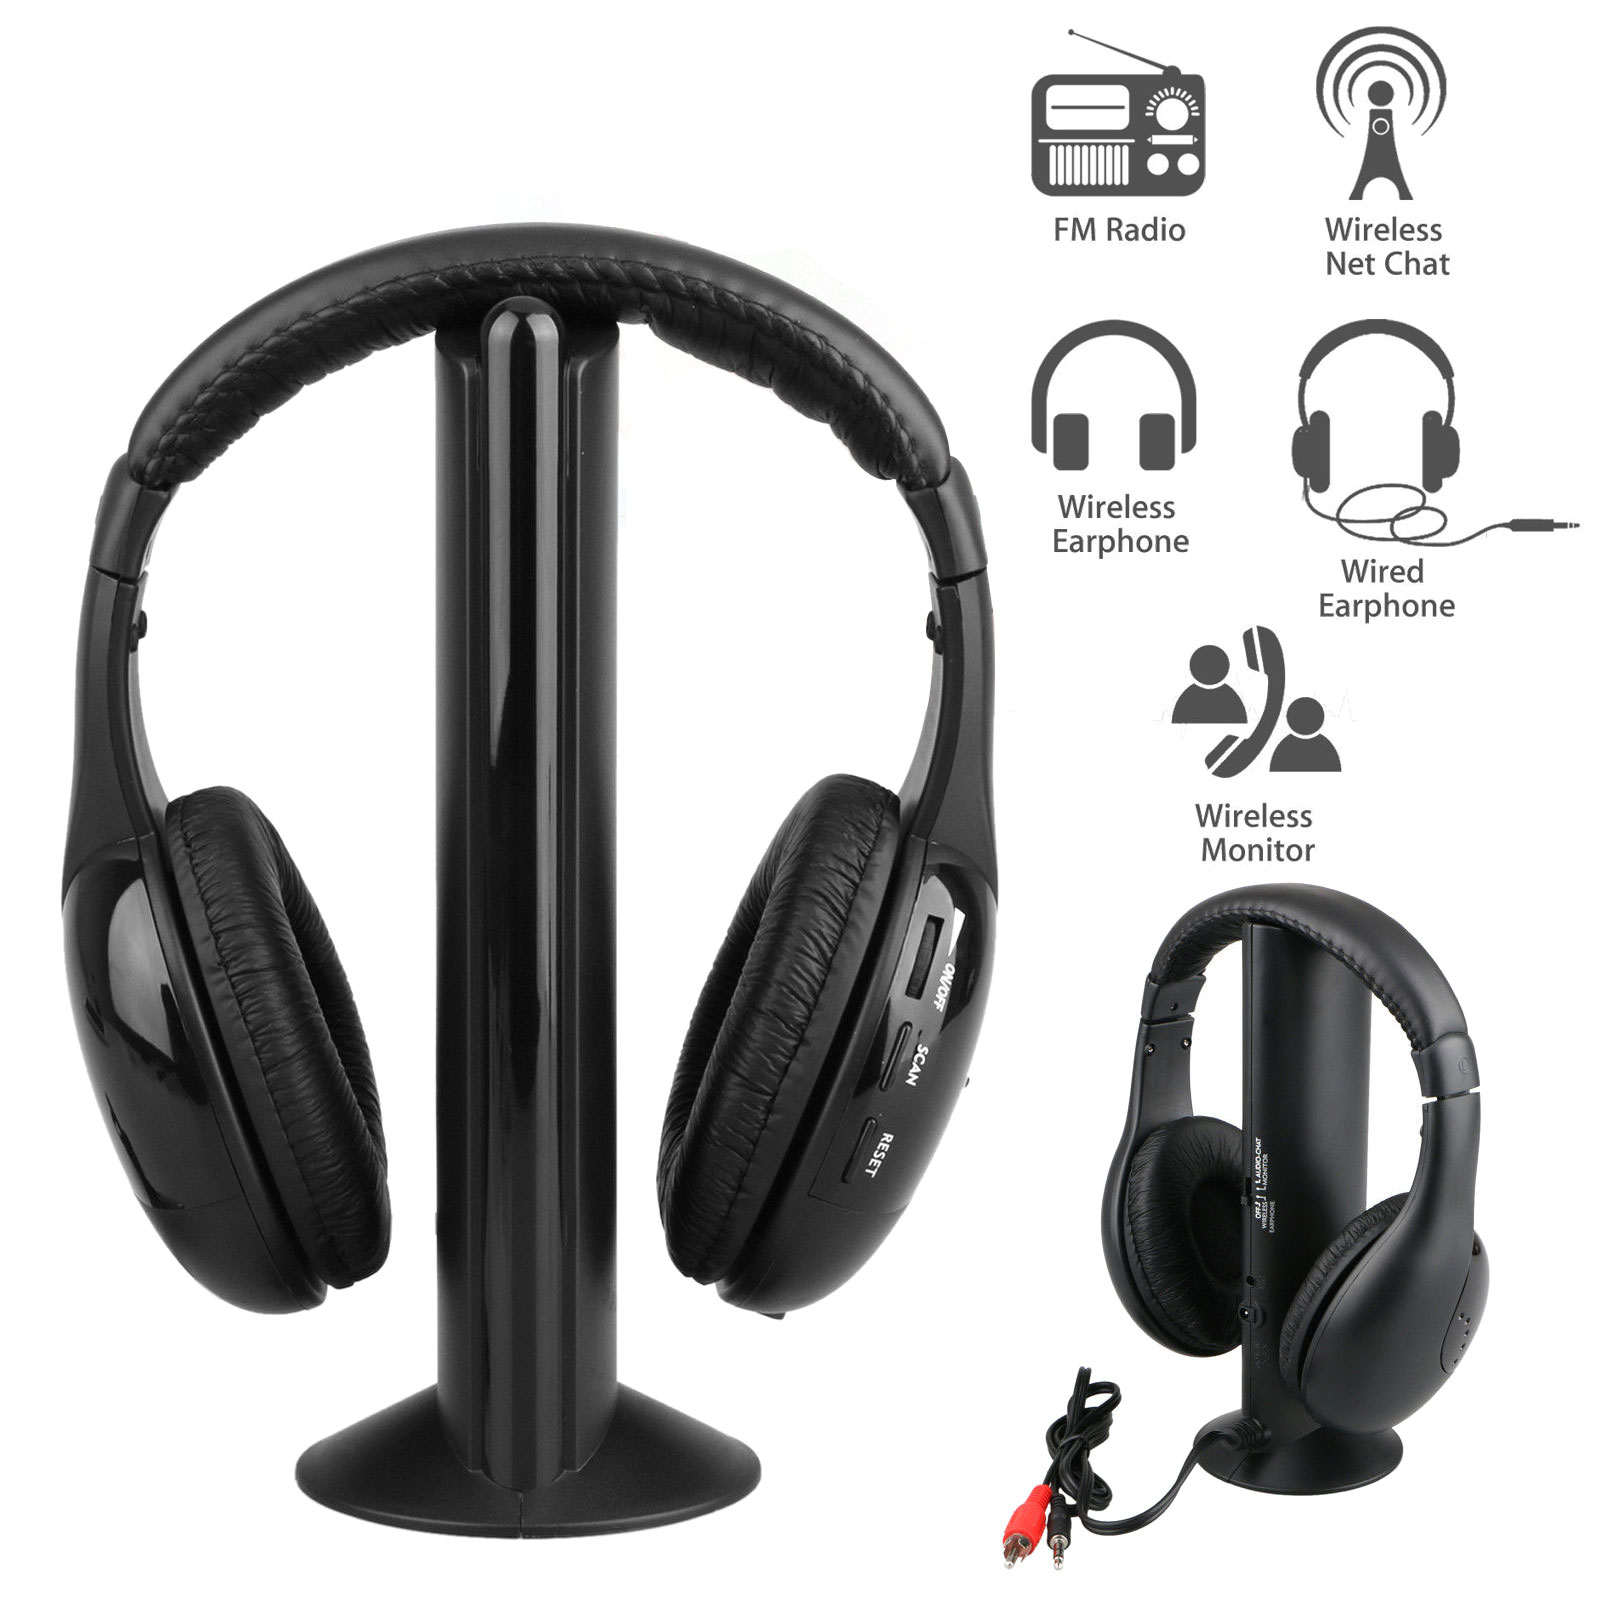 5 in 1 Headset Wireless Headphones Earphones Cordless RF Radio Mic w/ Holder Stand for PC TV DVD CD MP3 MP4